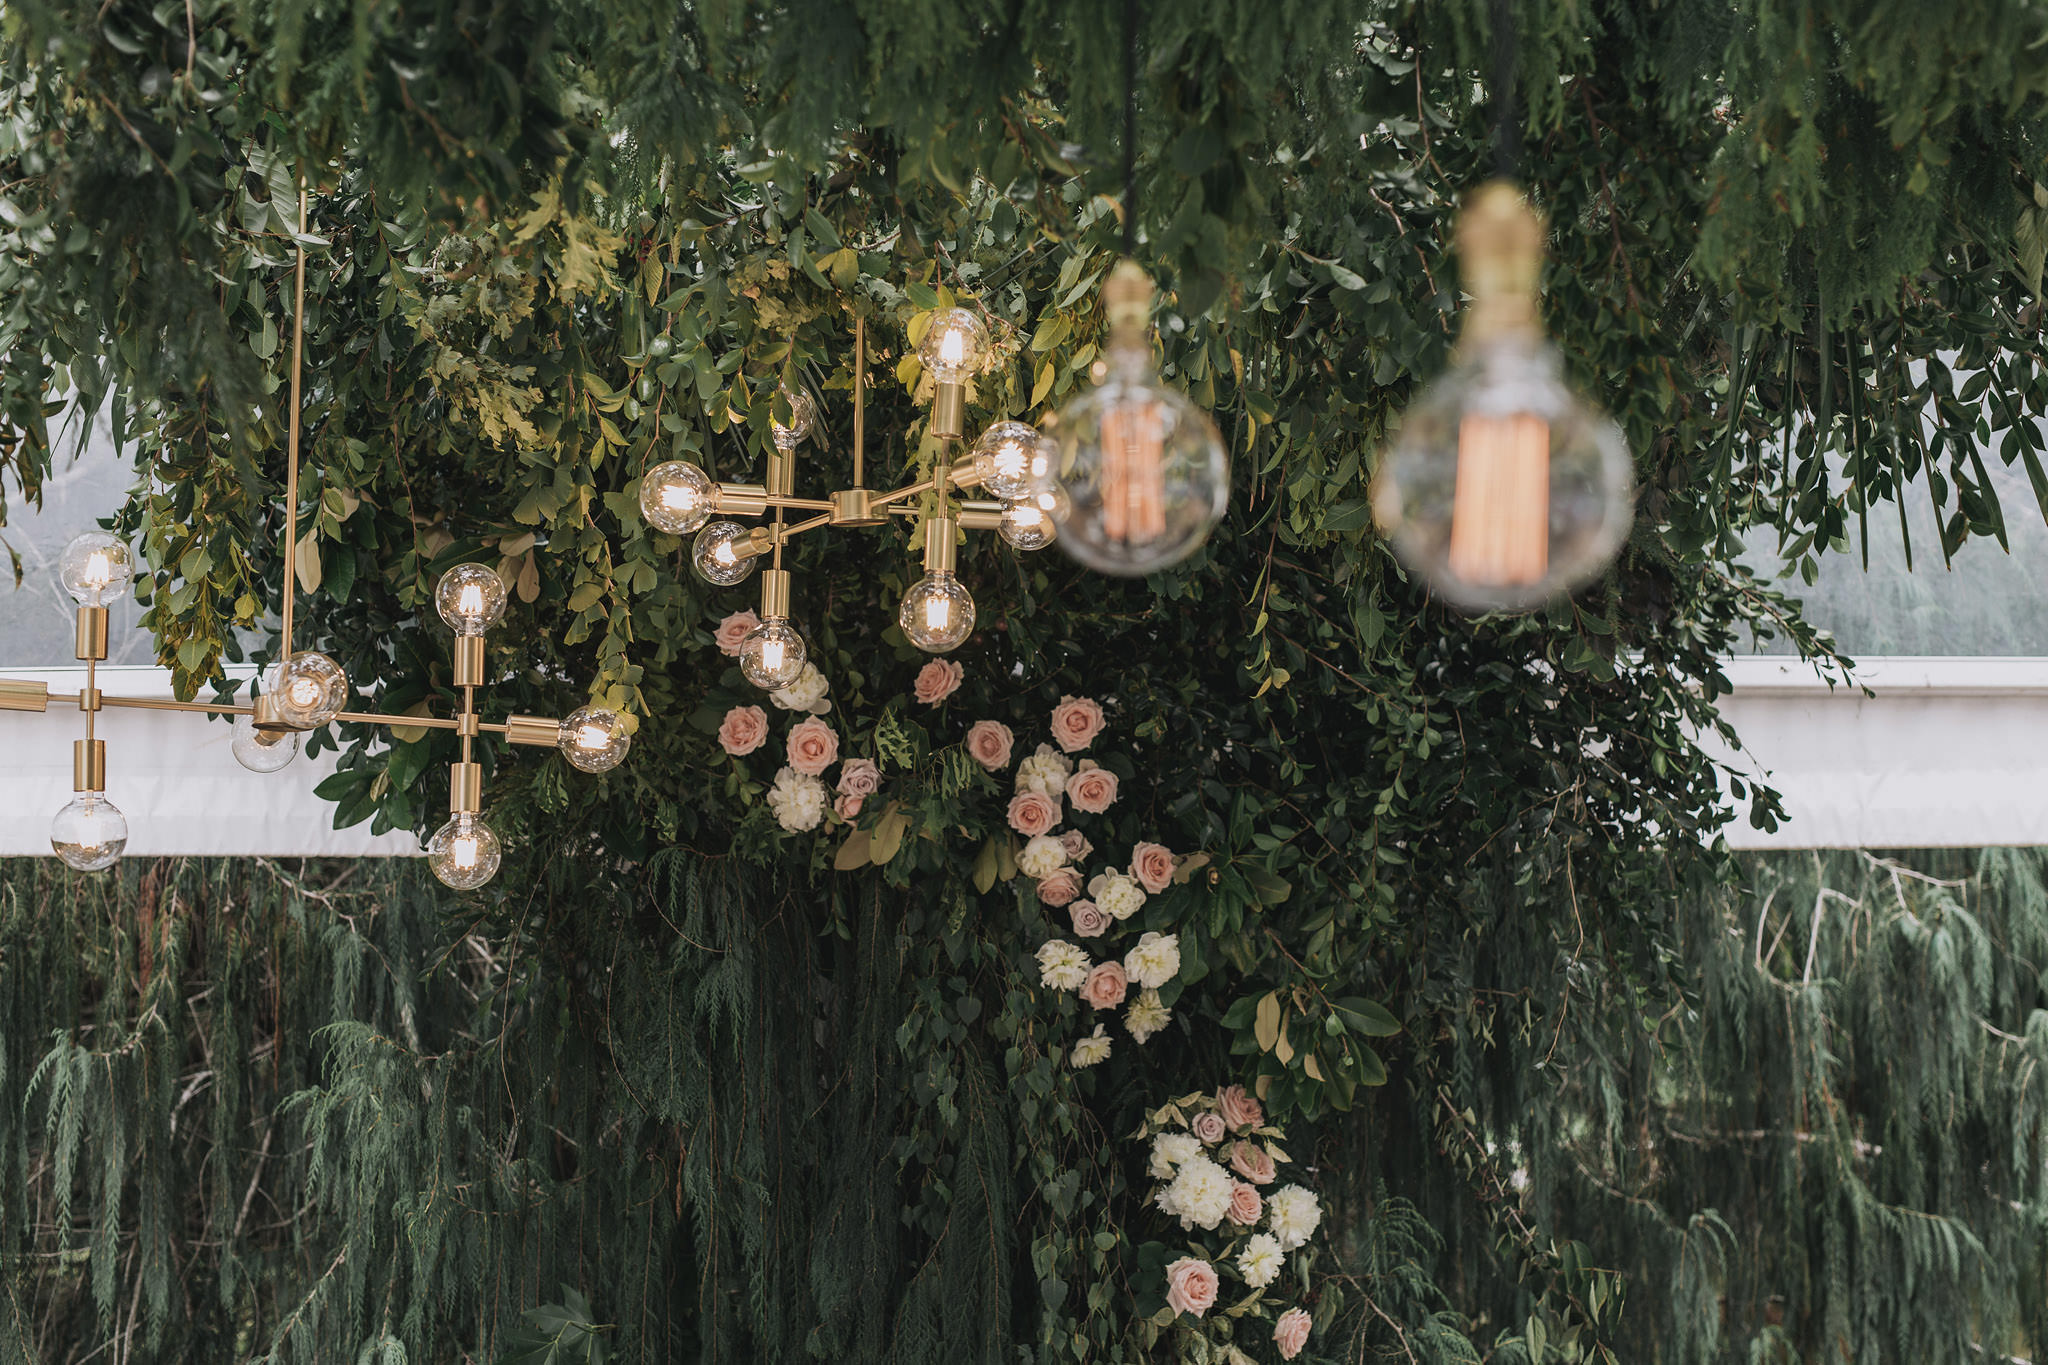 On My Hand wedding flowers - real wedding portfolio - Abbey and Ash - hanging flowers and lights in wedding reception marquee